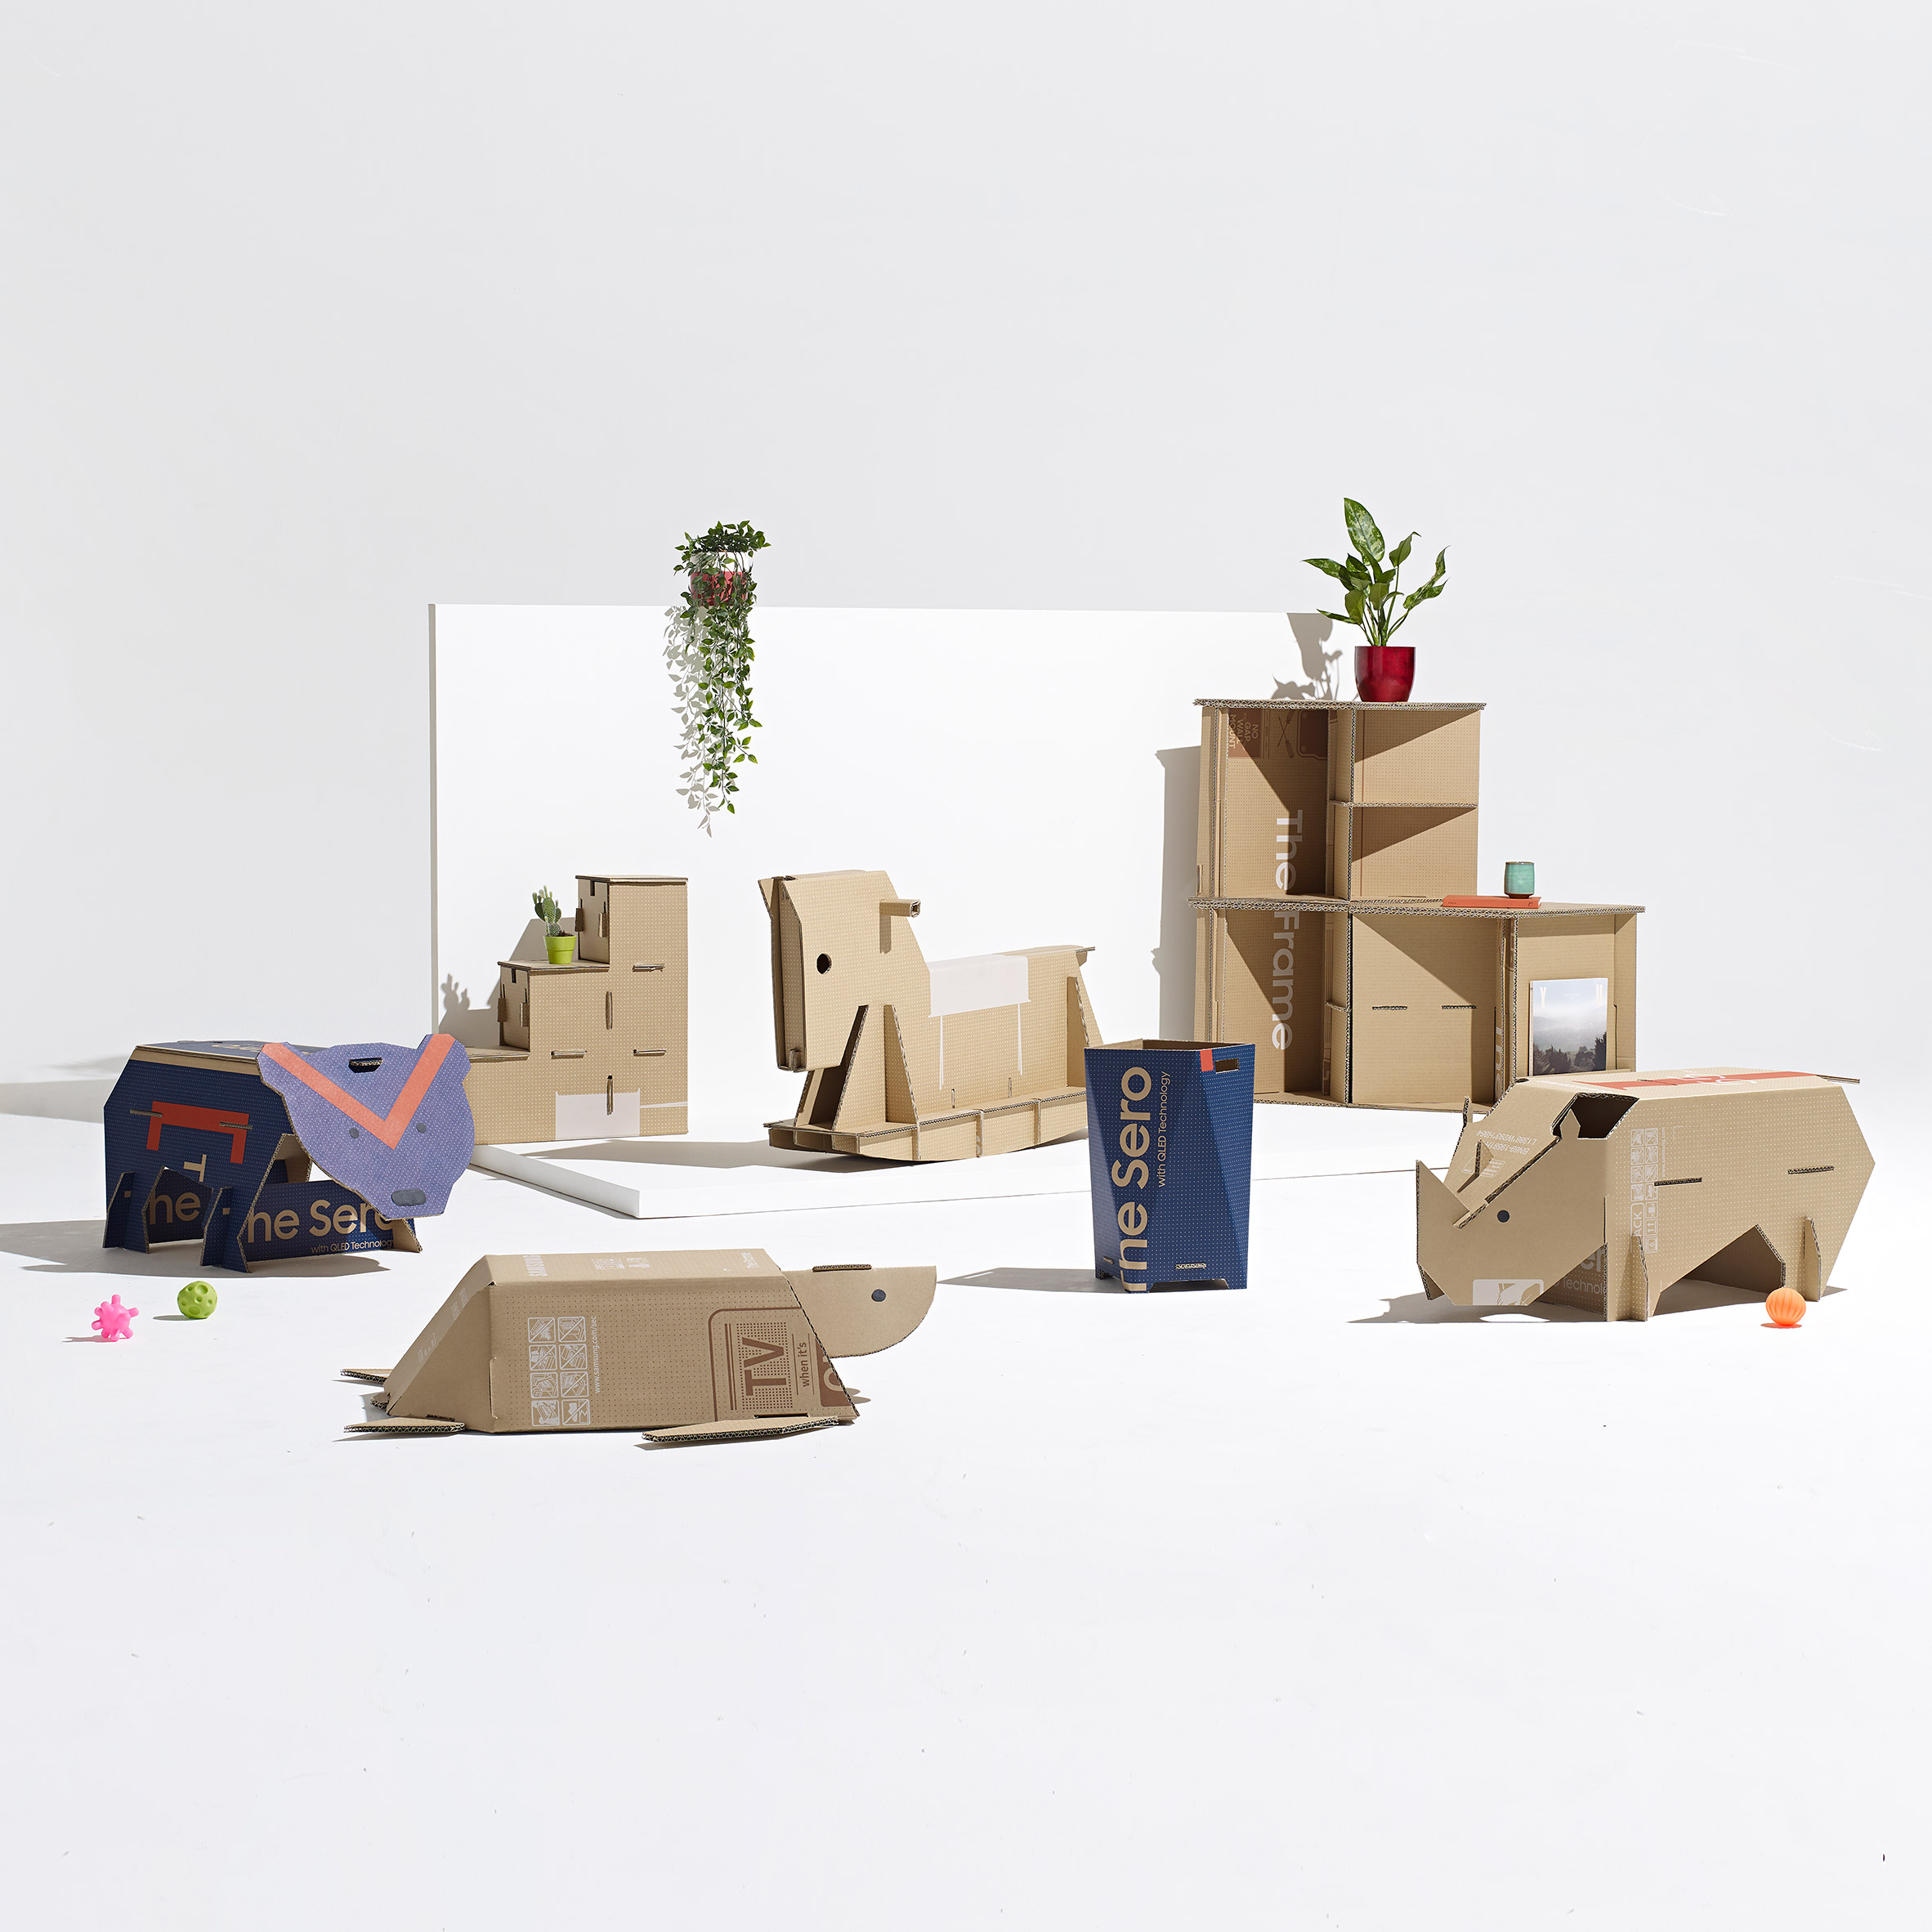 Dezeen x Samsung Out of the Box finalist designs made from repurposed cardboard boxes